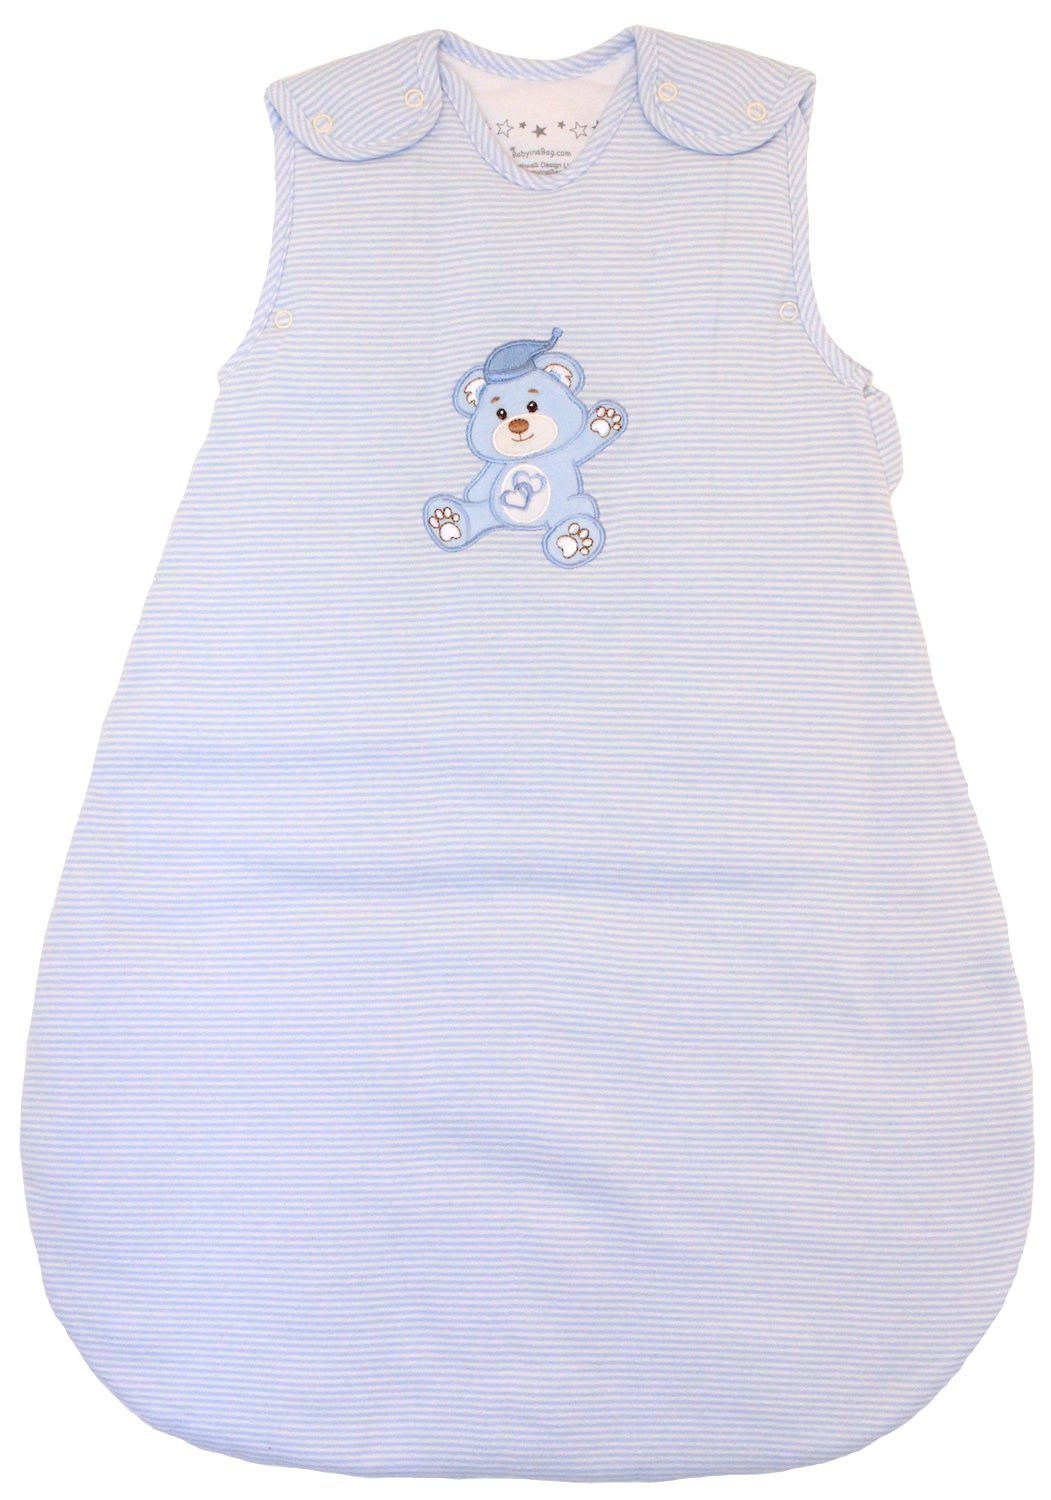 Baby Sleeping Bag - Wearable Blanket, 100% Cotton, Blue Stripes, Winter Model, 2.5 Tog (Small (3-11 mos))